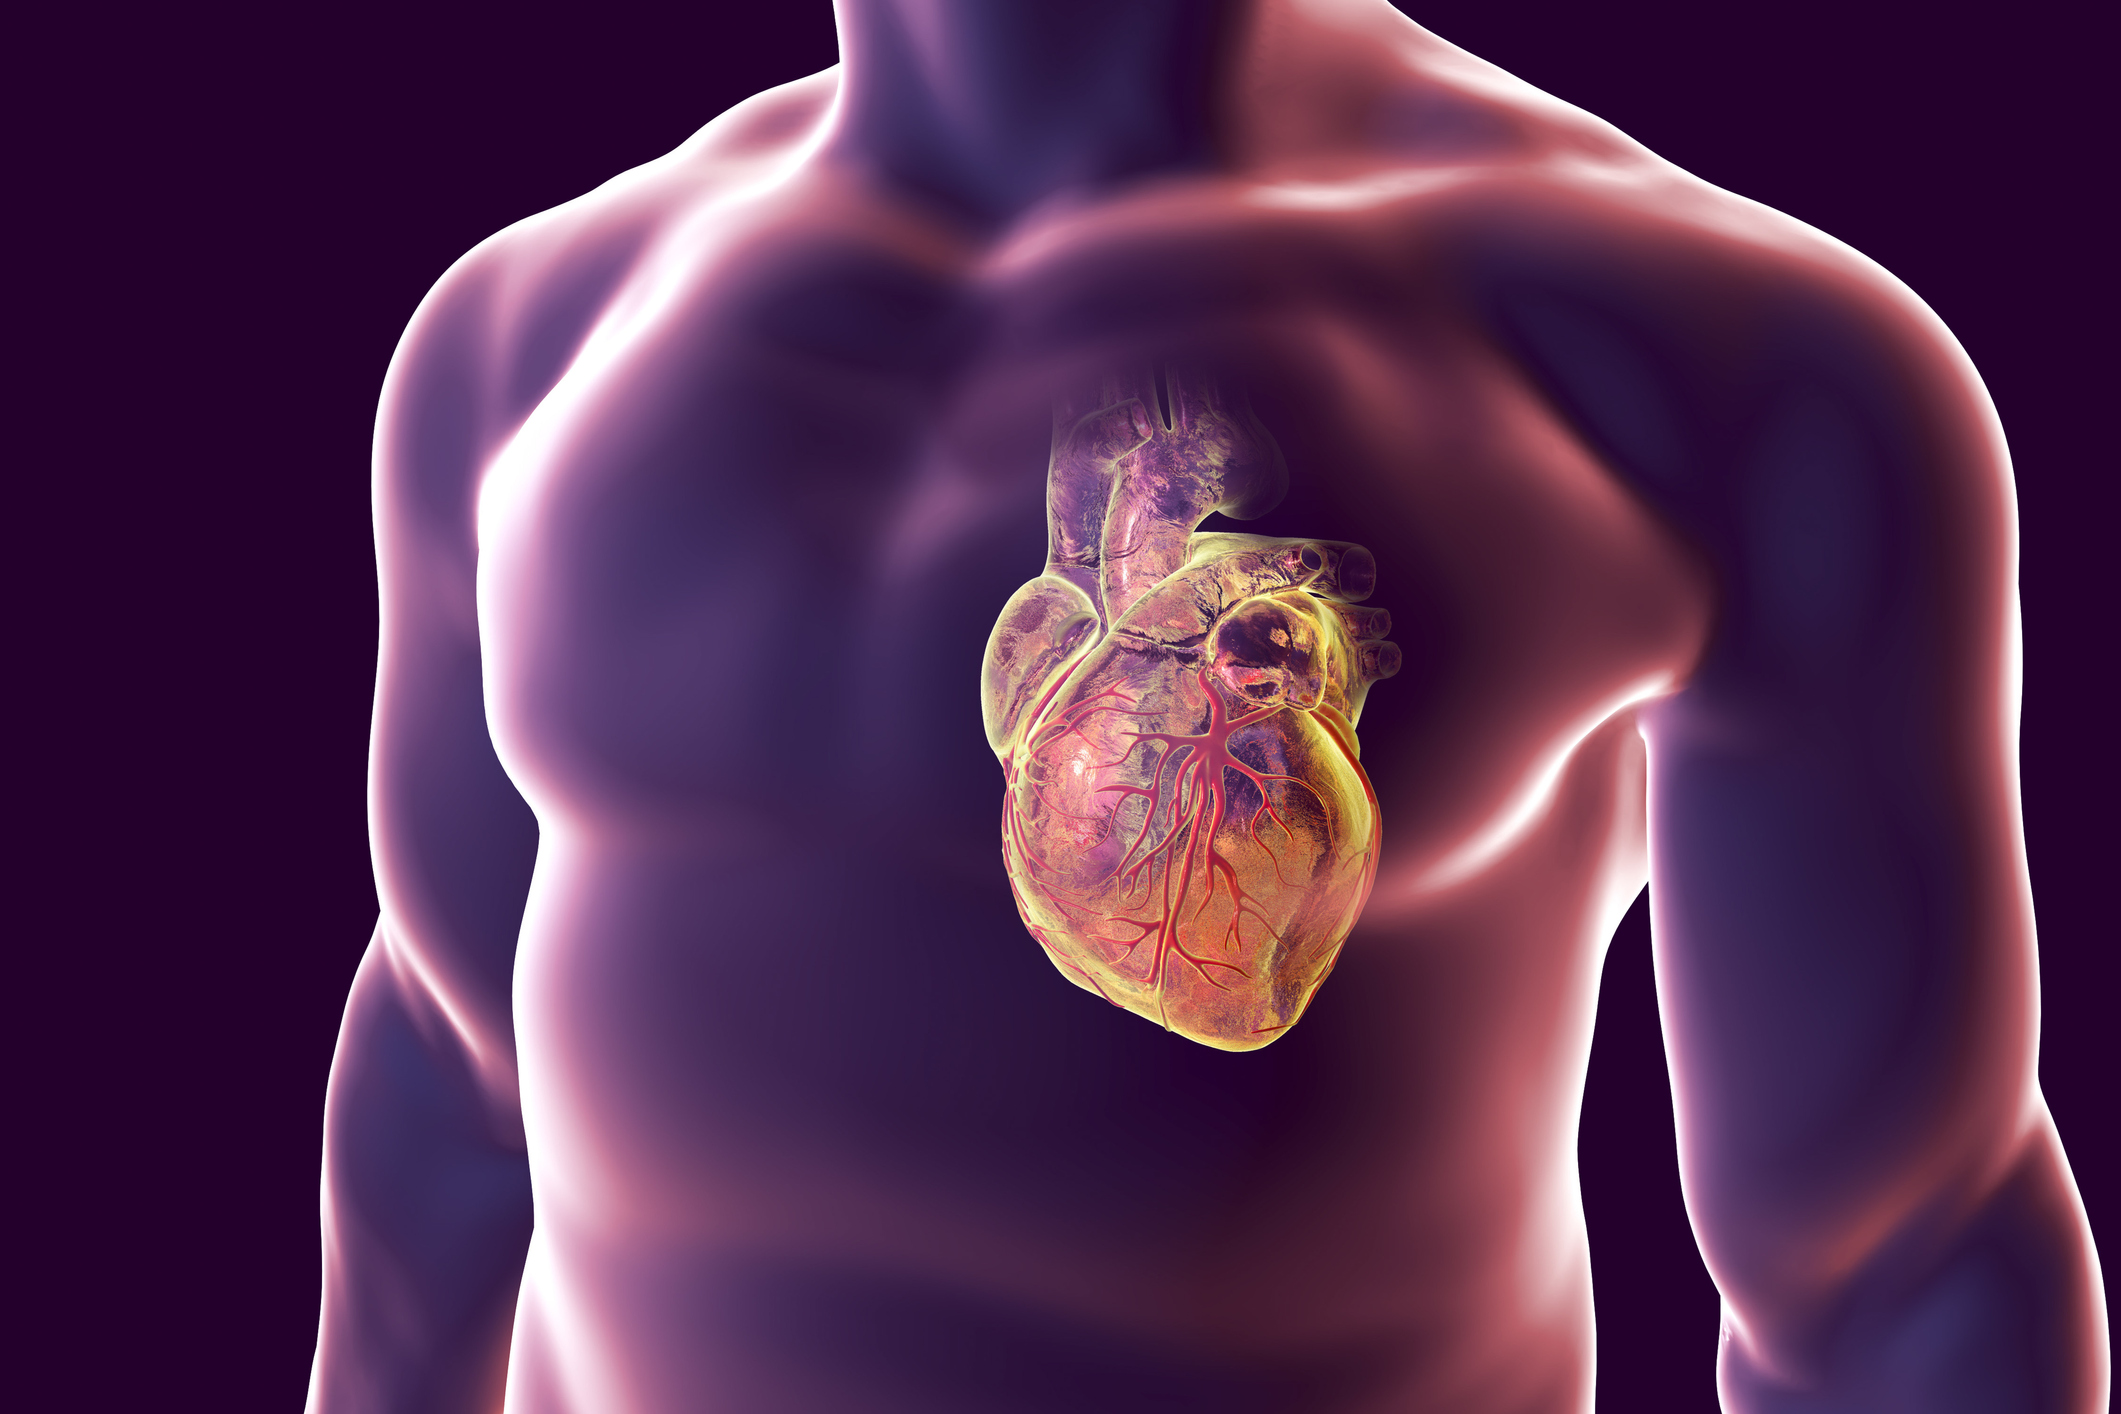 Signs of heart attacks in young people and what to do